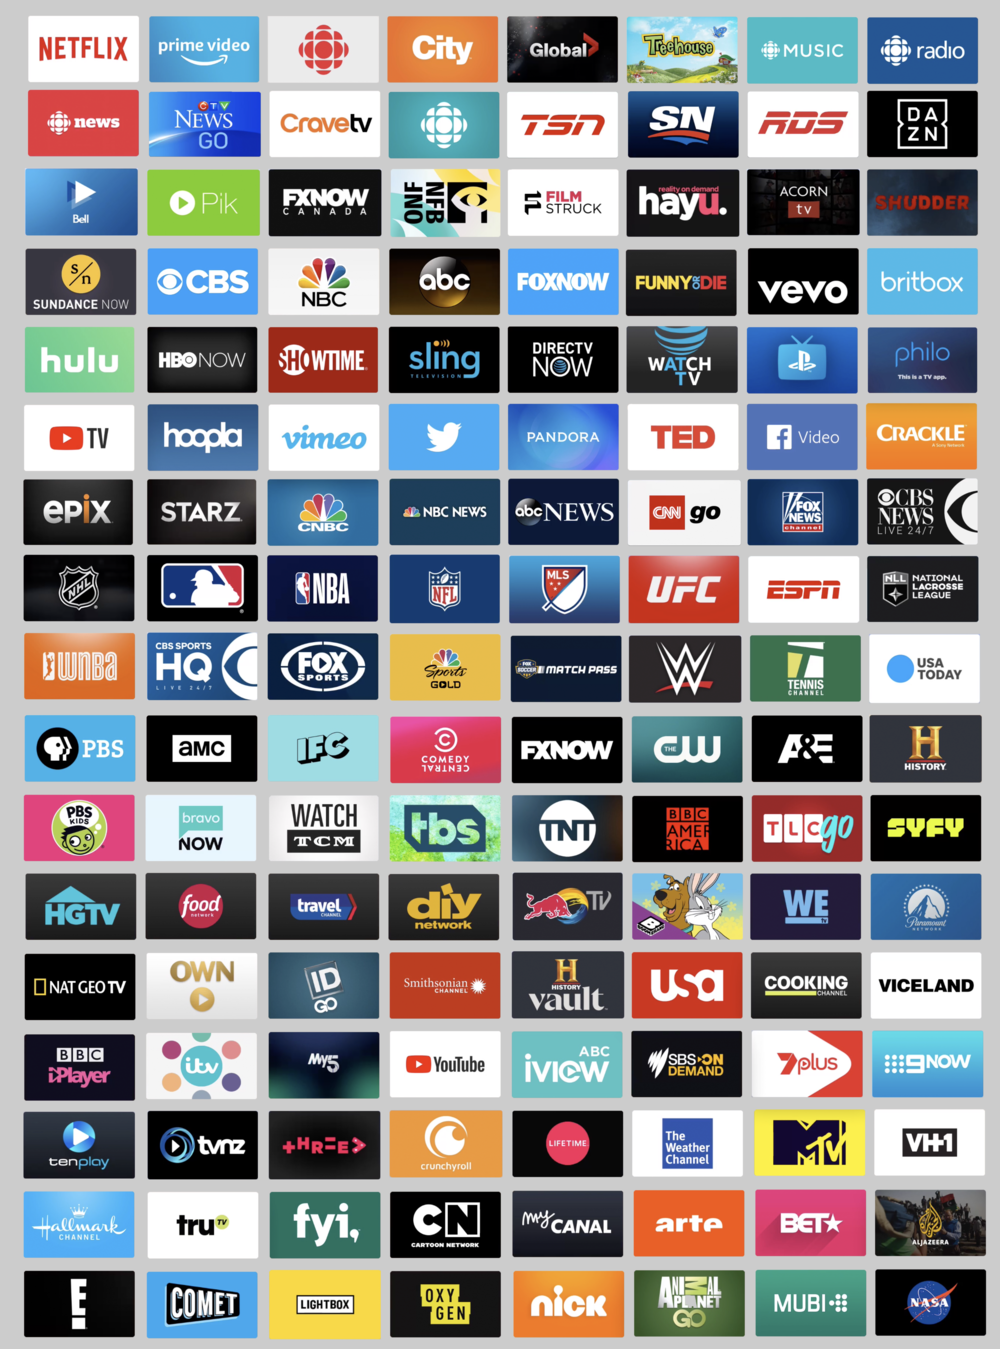 An example of all of the apps I currently have on my Apple TV.